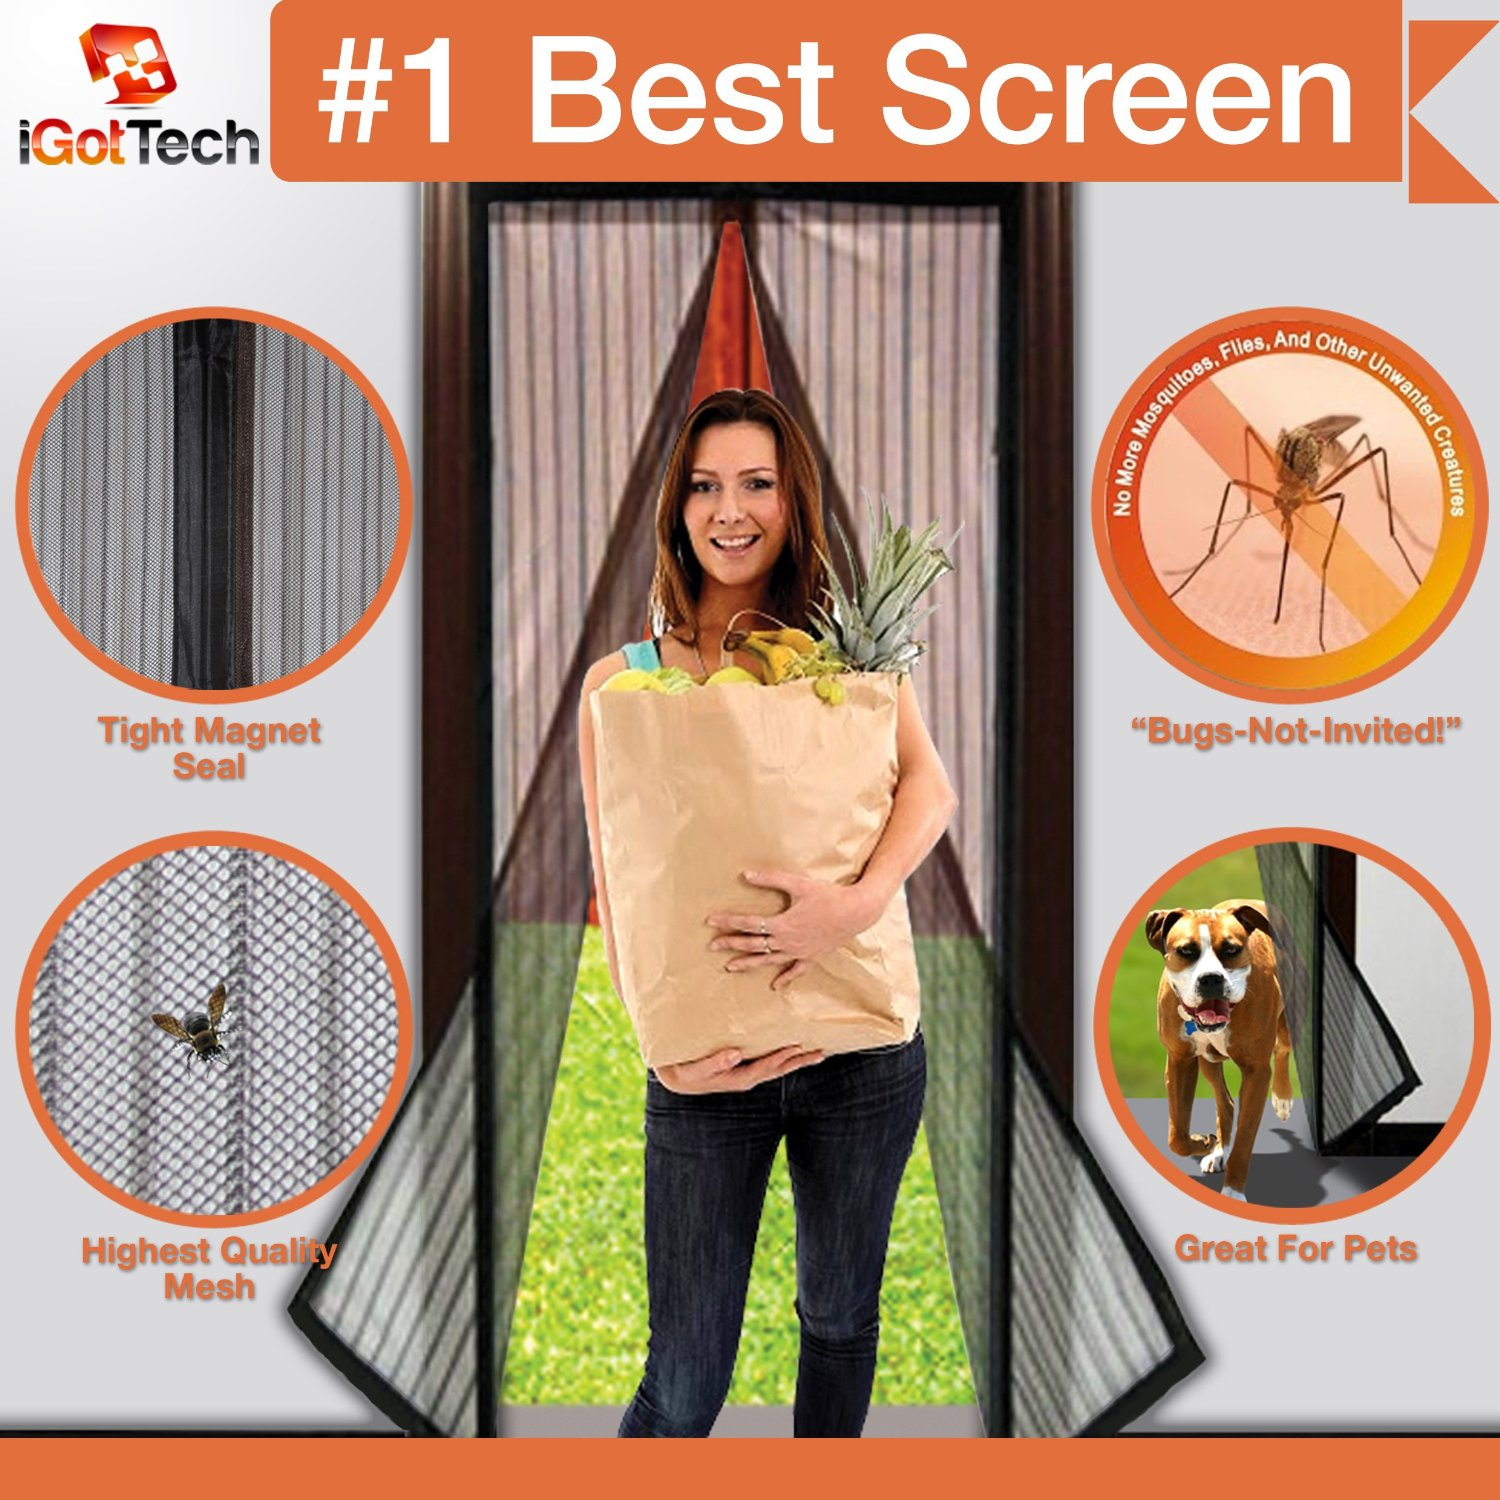 Magnetic Screen Door - iGotTech Review